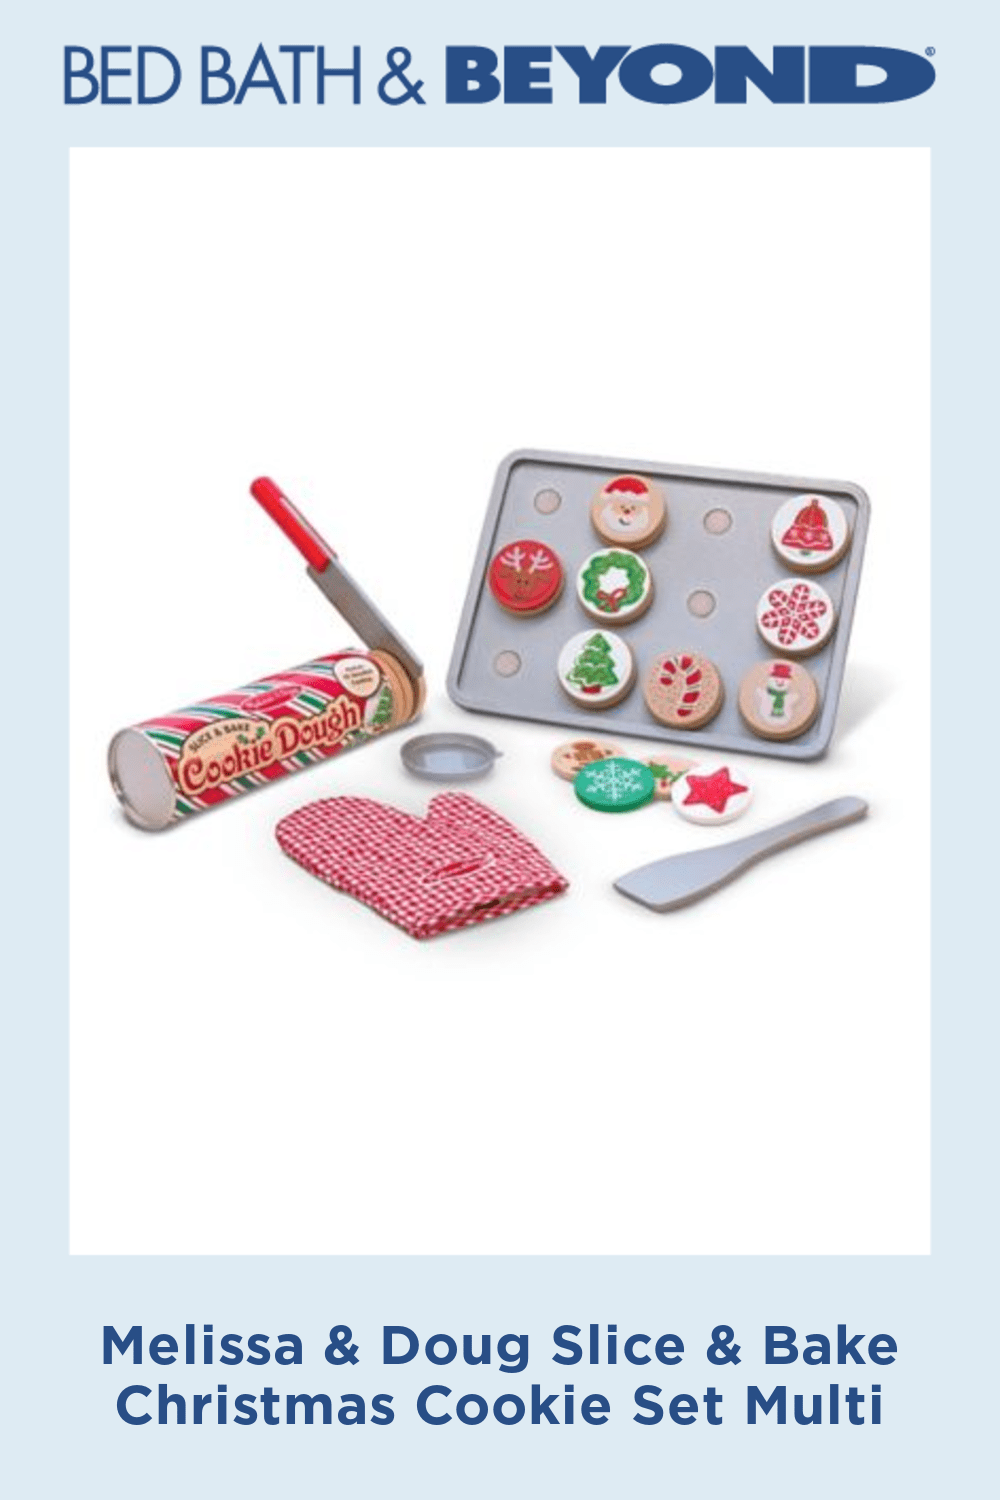 Melissa & Doug Slice & Bake Christmas Cookie Set Multi #sliceandbakecookieschristmas